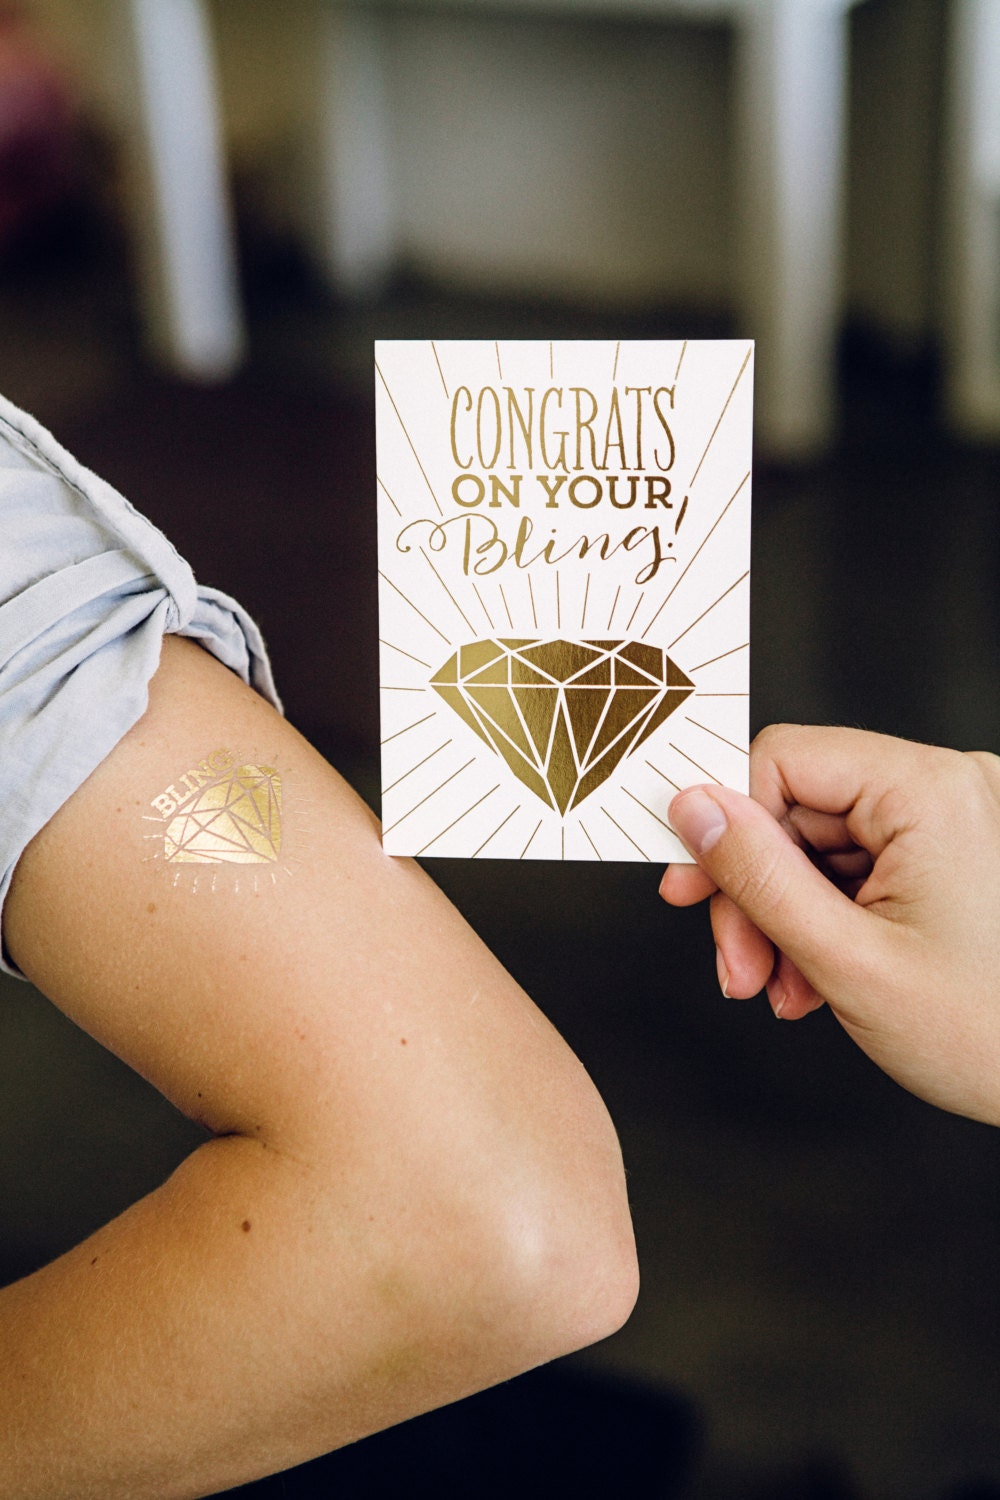 congrats on your bling gold foil tattoo and card by